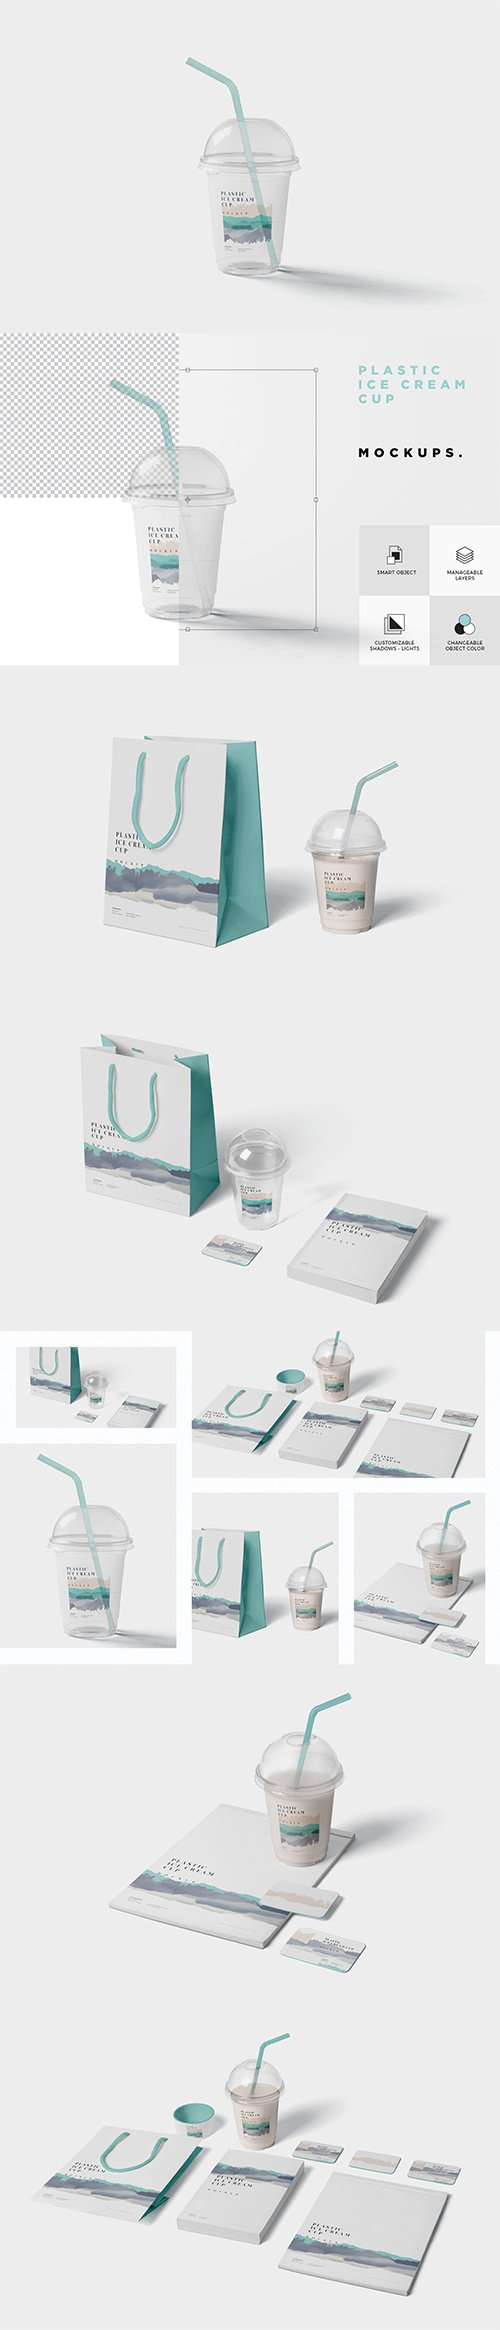 Transparent Plastic Ice Cream Cup Mockups PSD